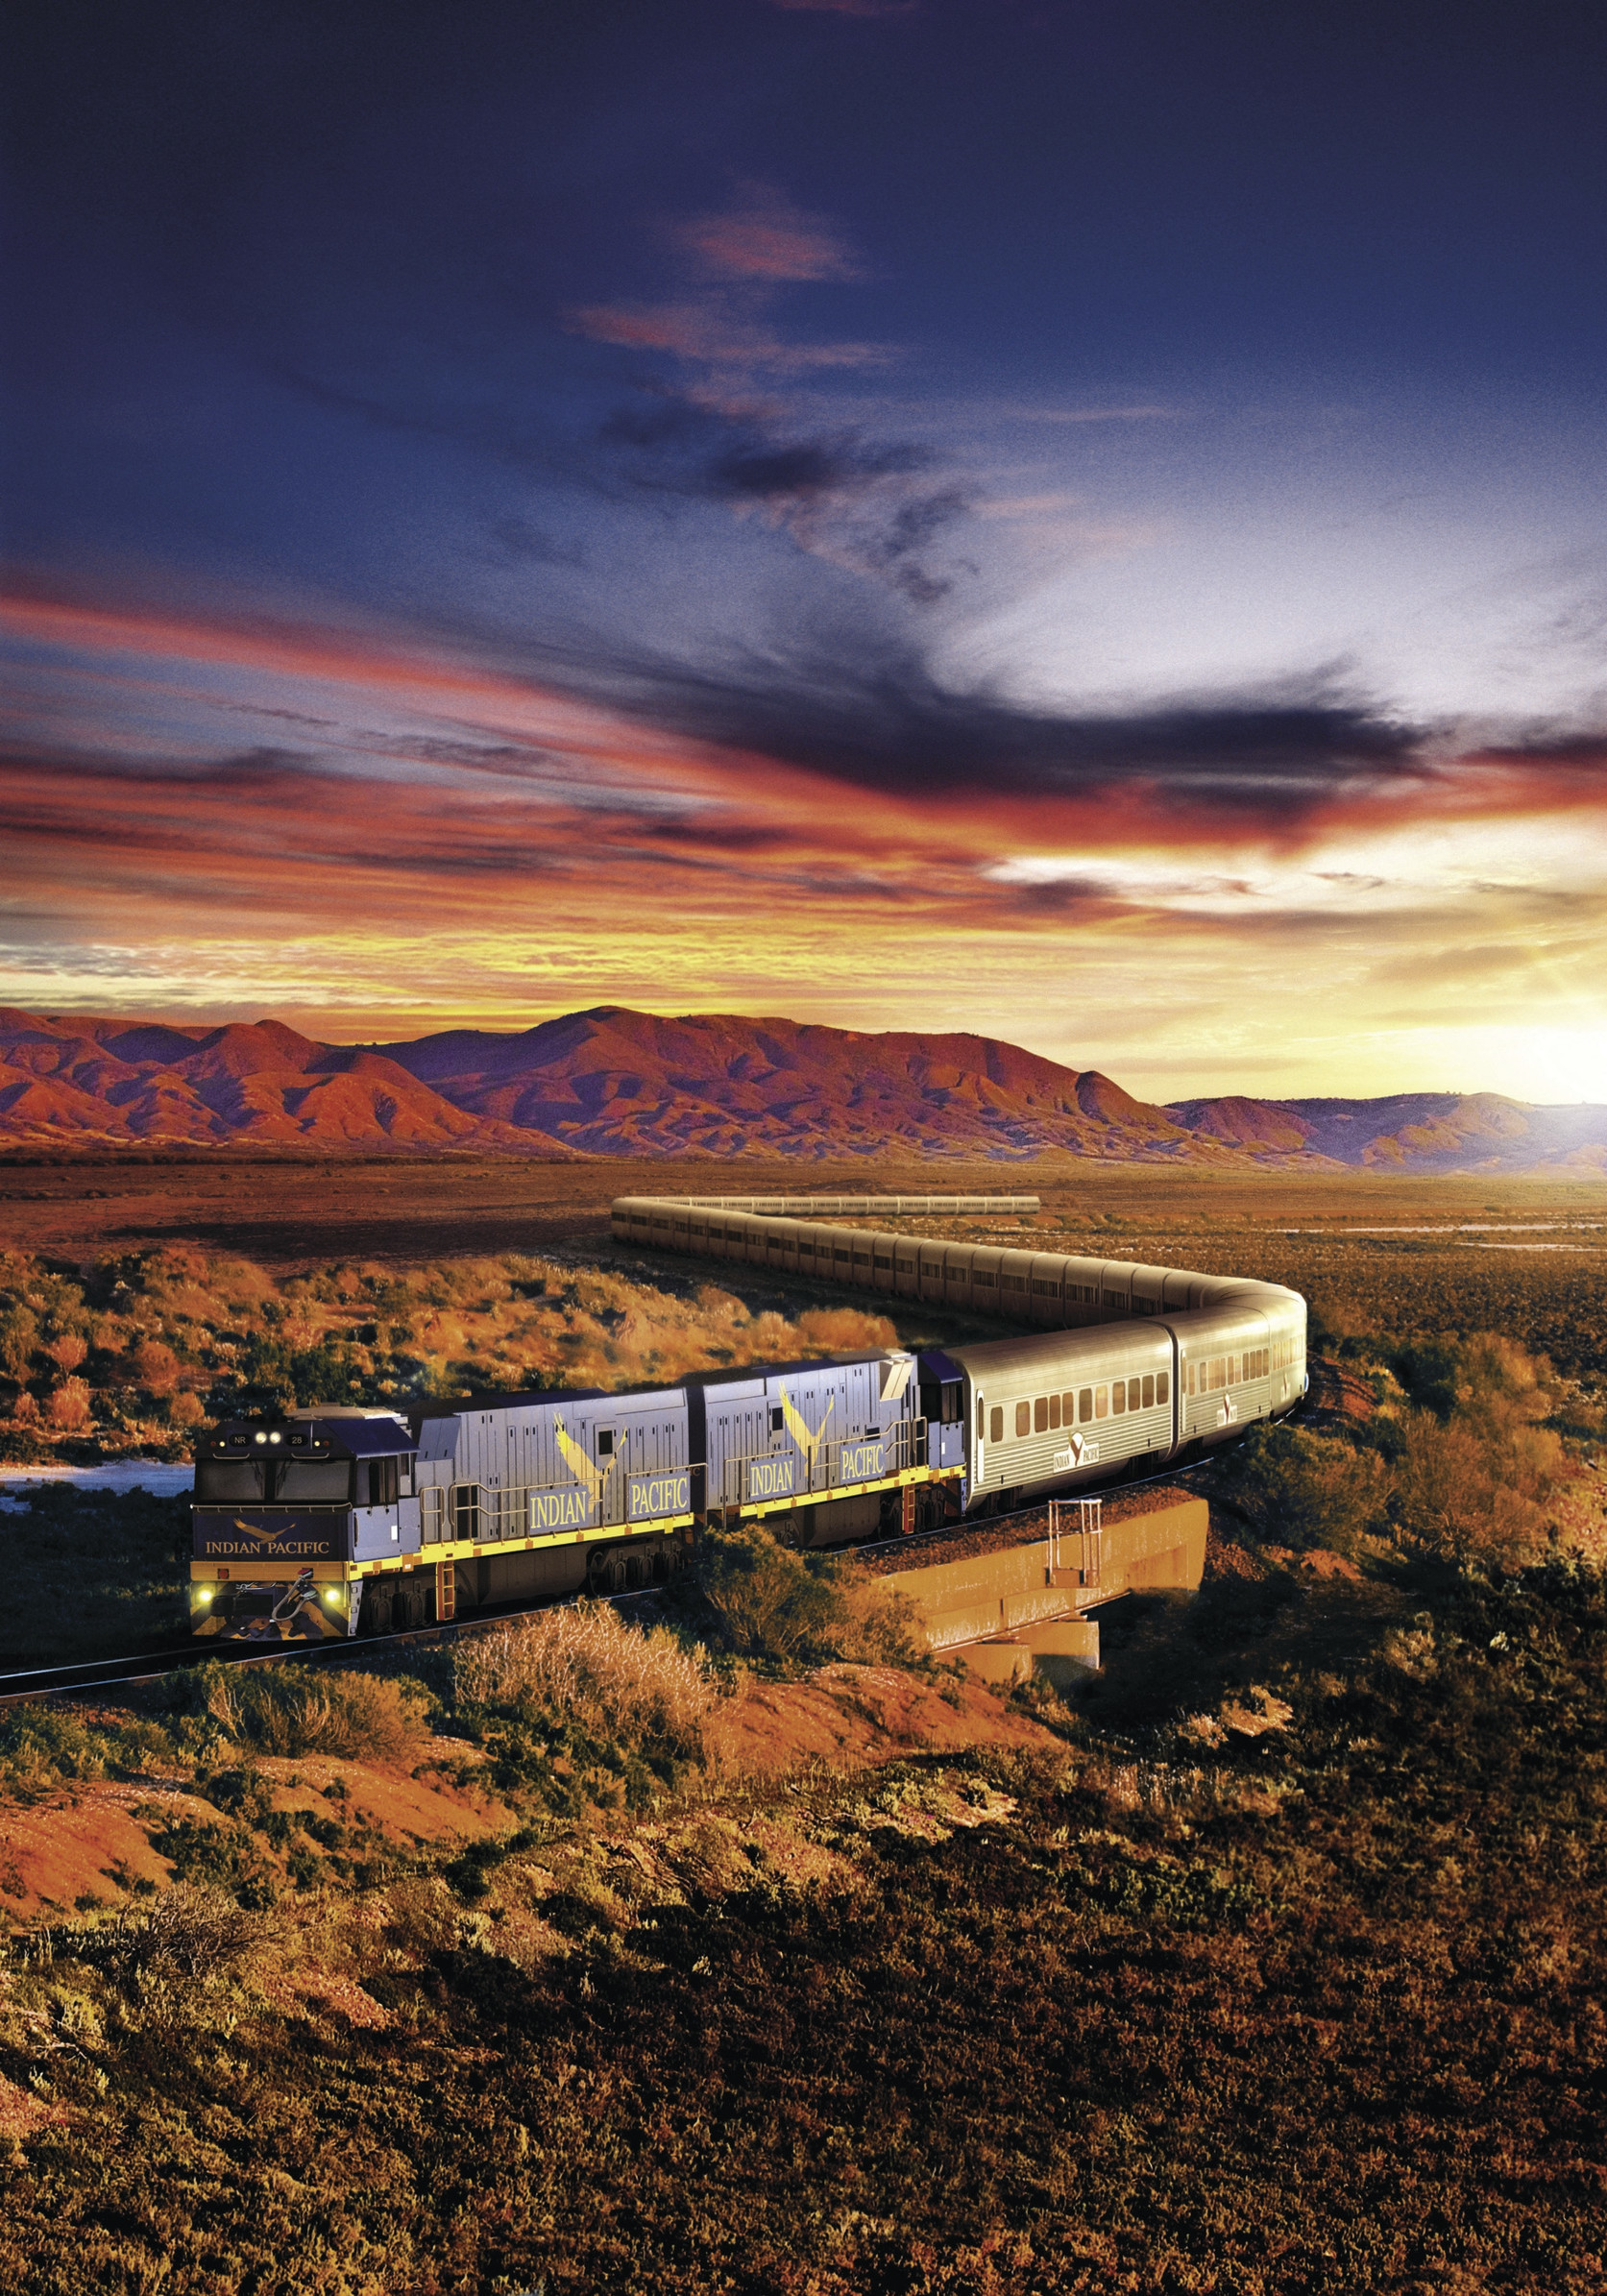 Indian Pacific rail journey Sydney to Perth